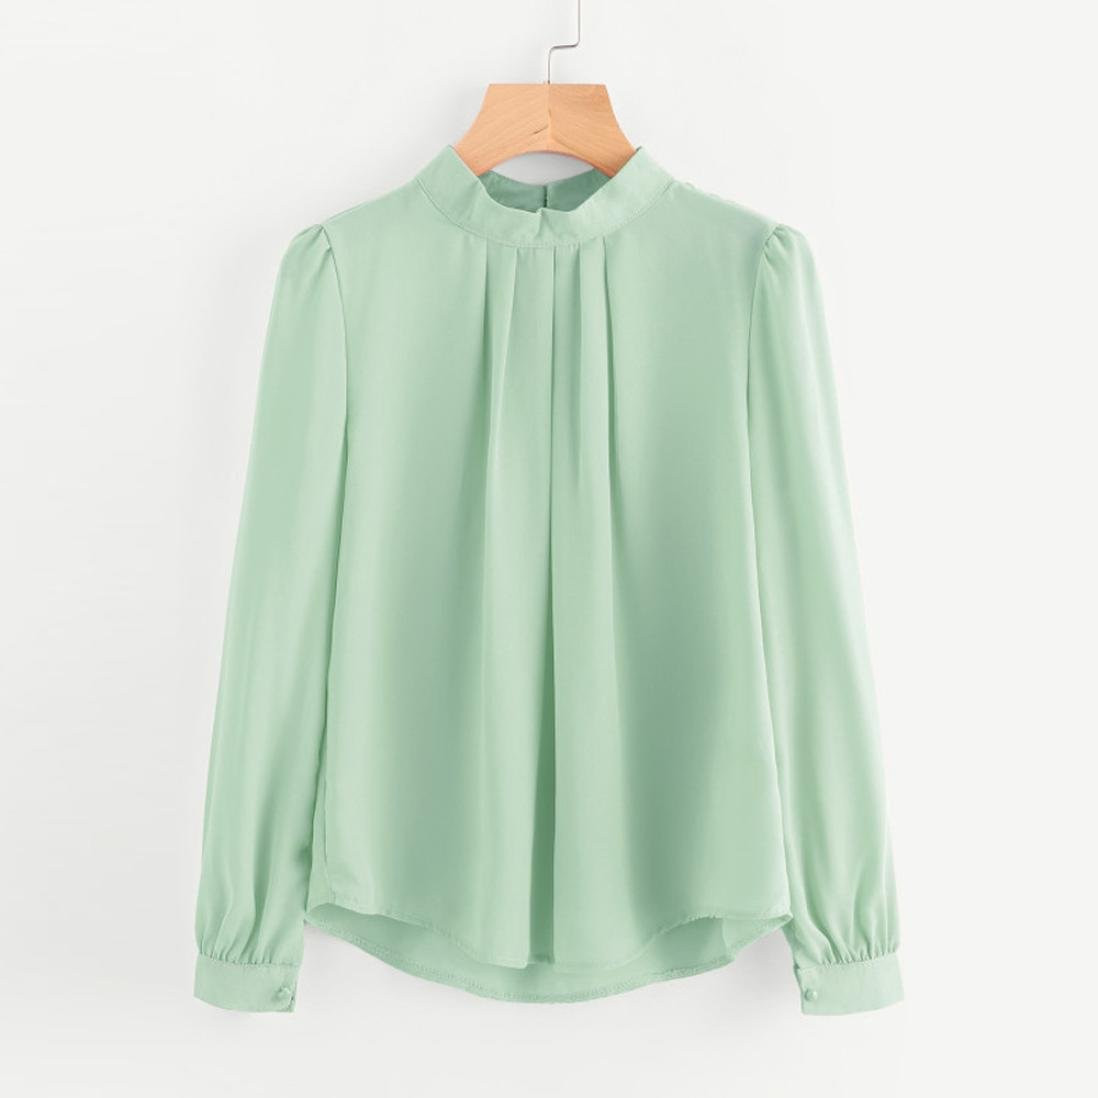 2b04cc9af9e Kangma Women Summer Casual Chiffon Long Sleeve Loose Shirt Tops Blouse Mint  Green at Amazon Women s Clothing store